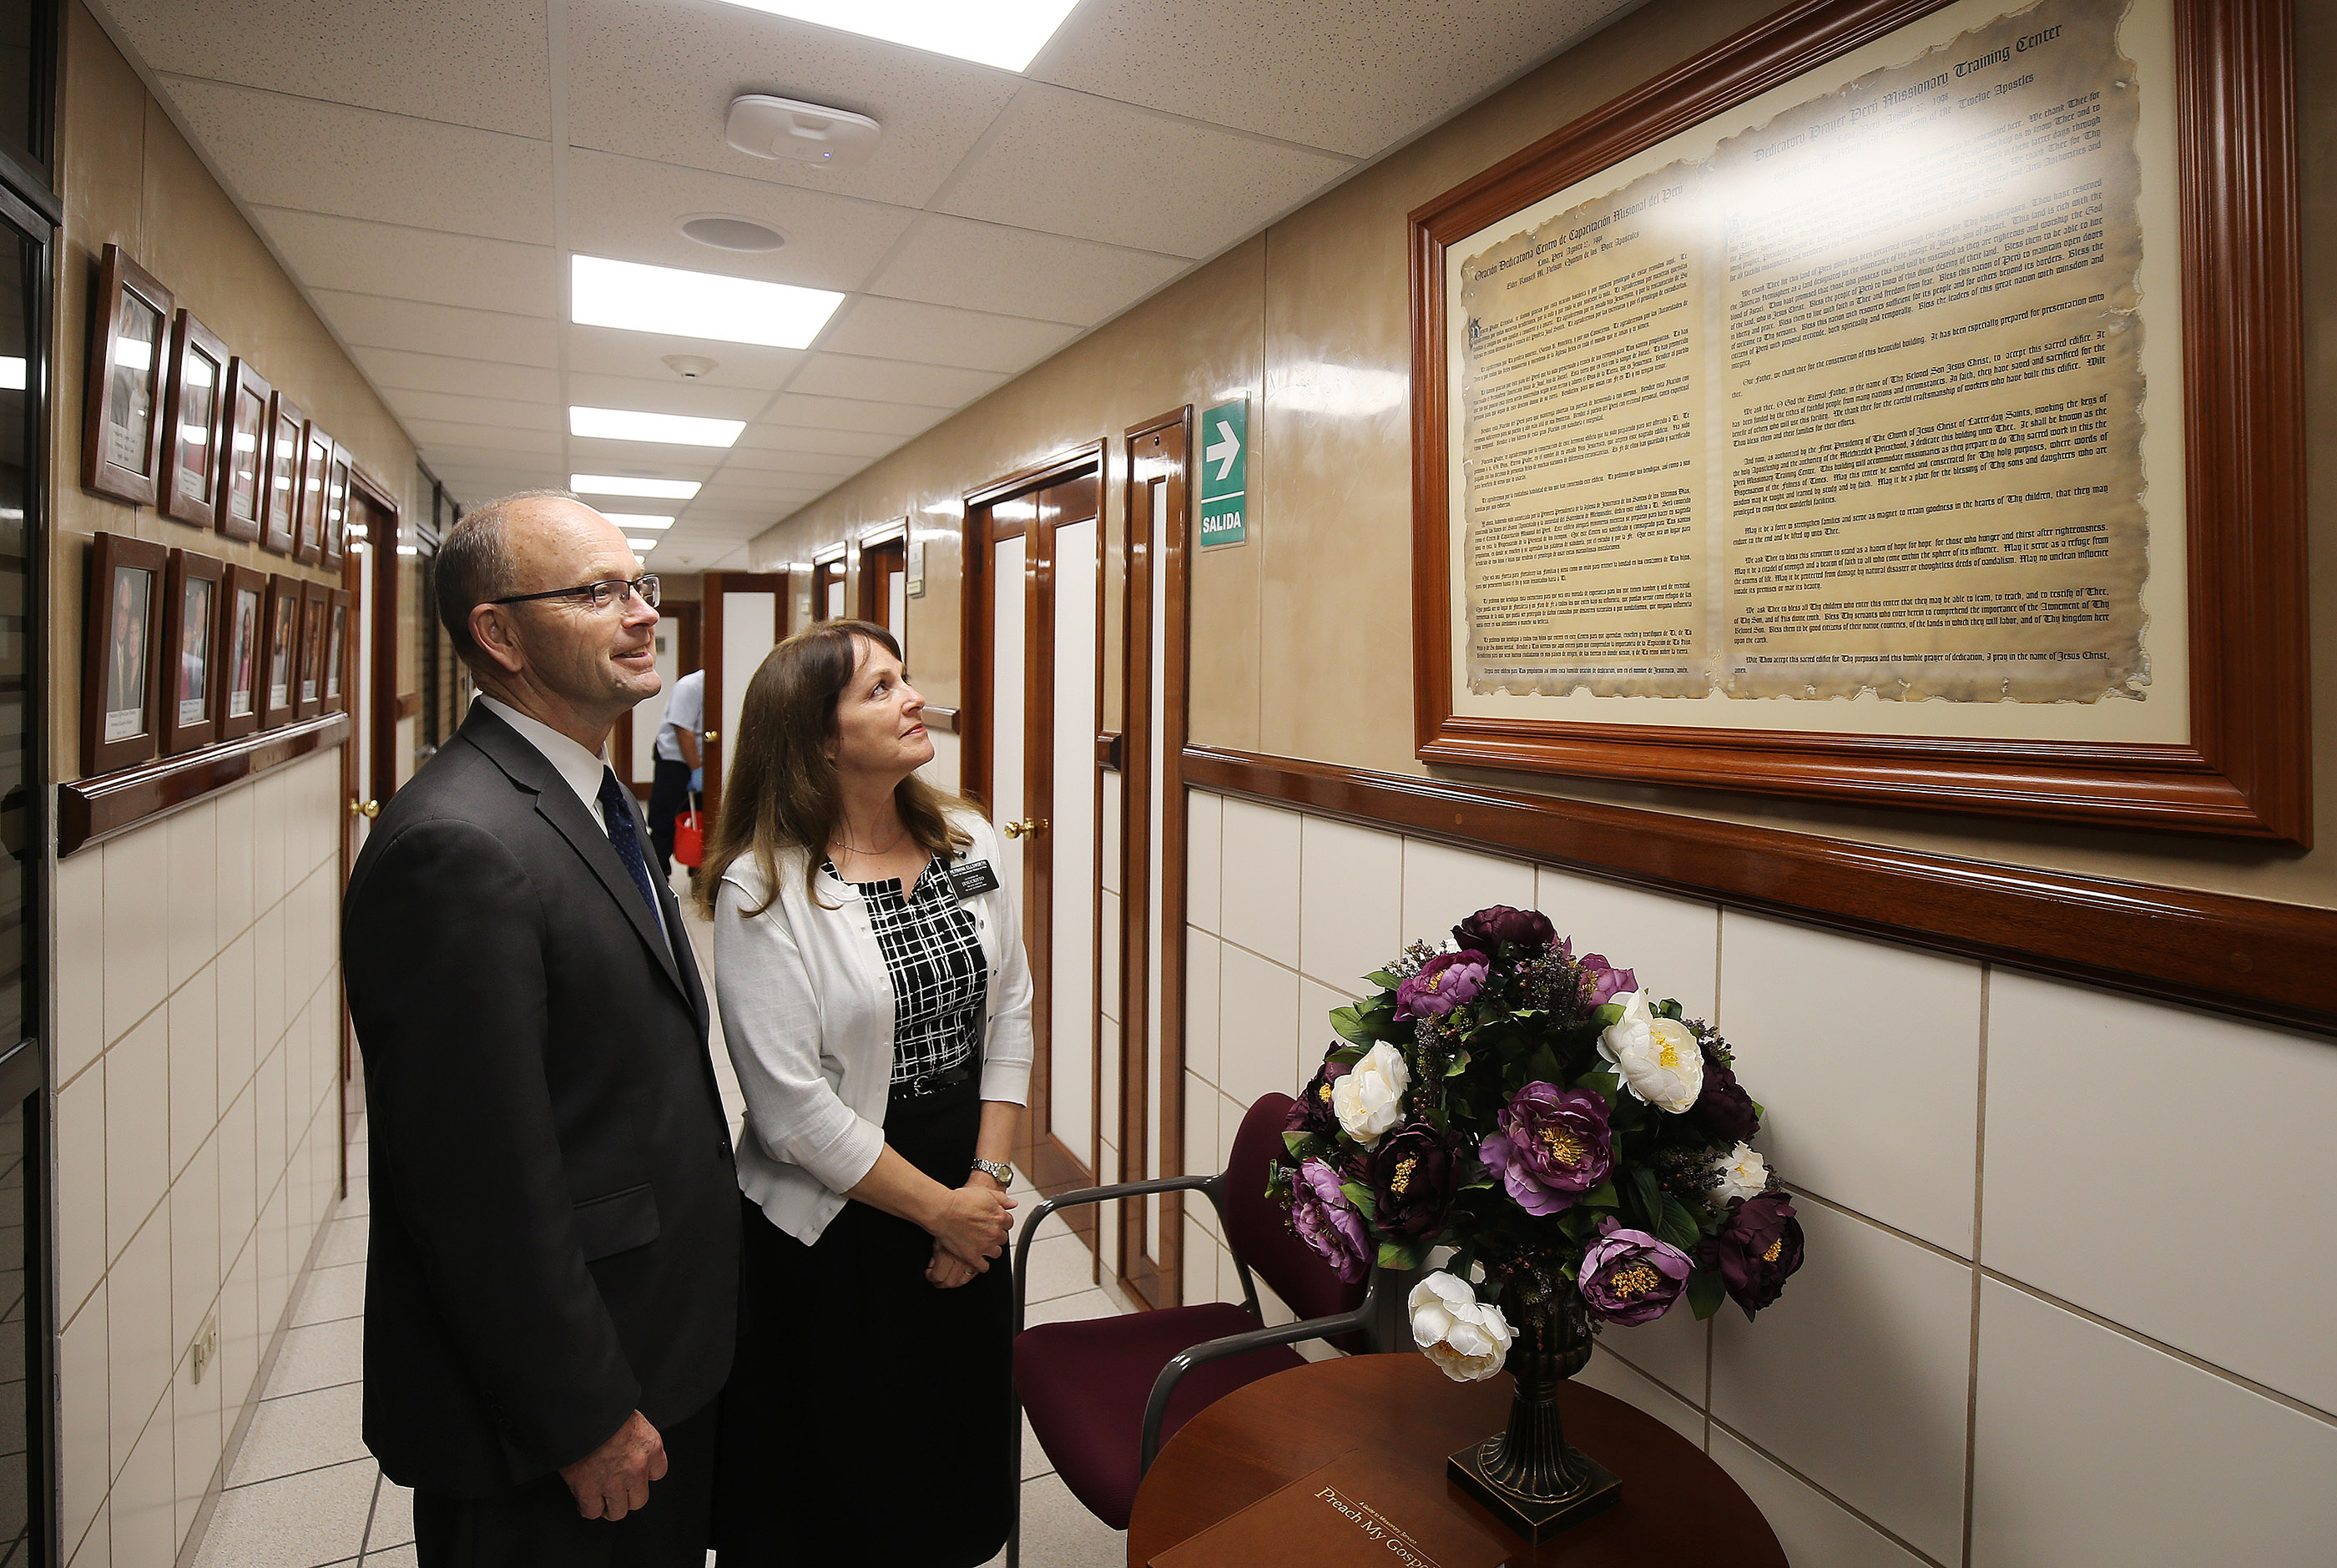 President R. Spence Ellsworth of the Peru Missionary Training Center and his wife, Sister Laurie Ellsworth, look over the dedicatory prayer by President Russell Nelson displayed at the training center in Lima, Peru on Friday, Oct. 19, 2018.